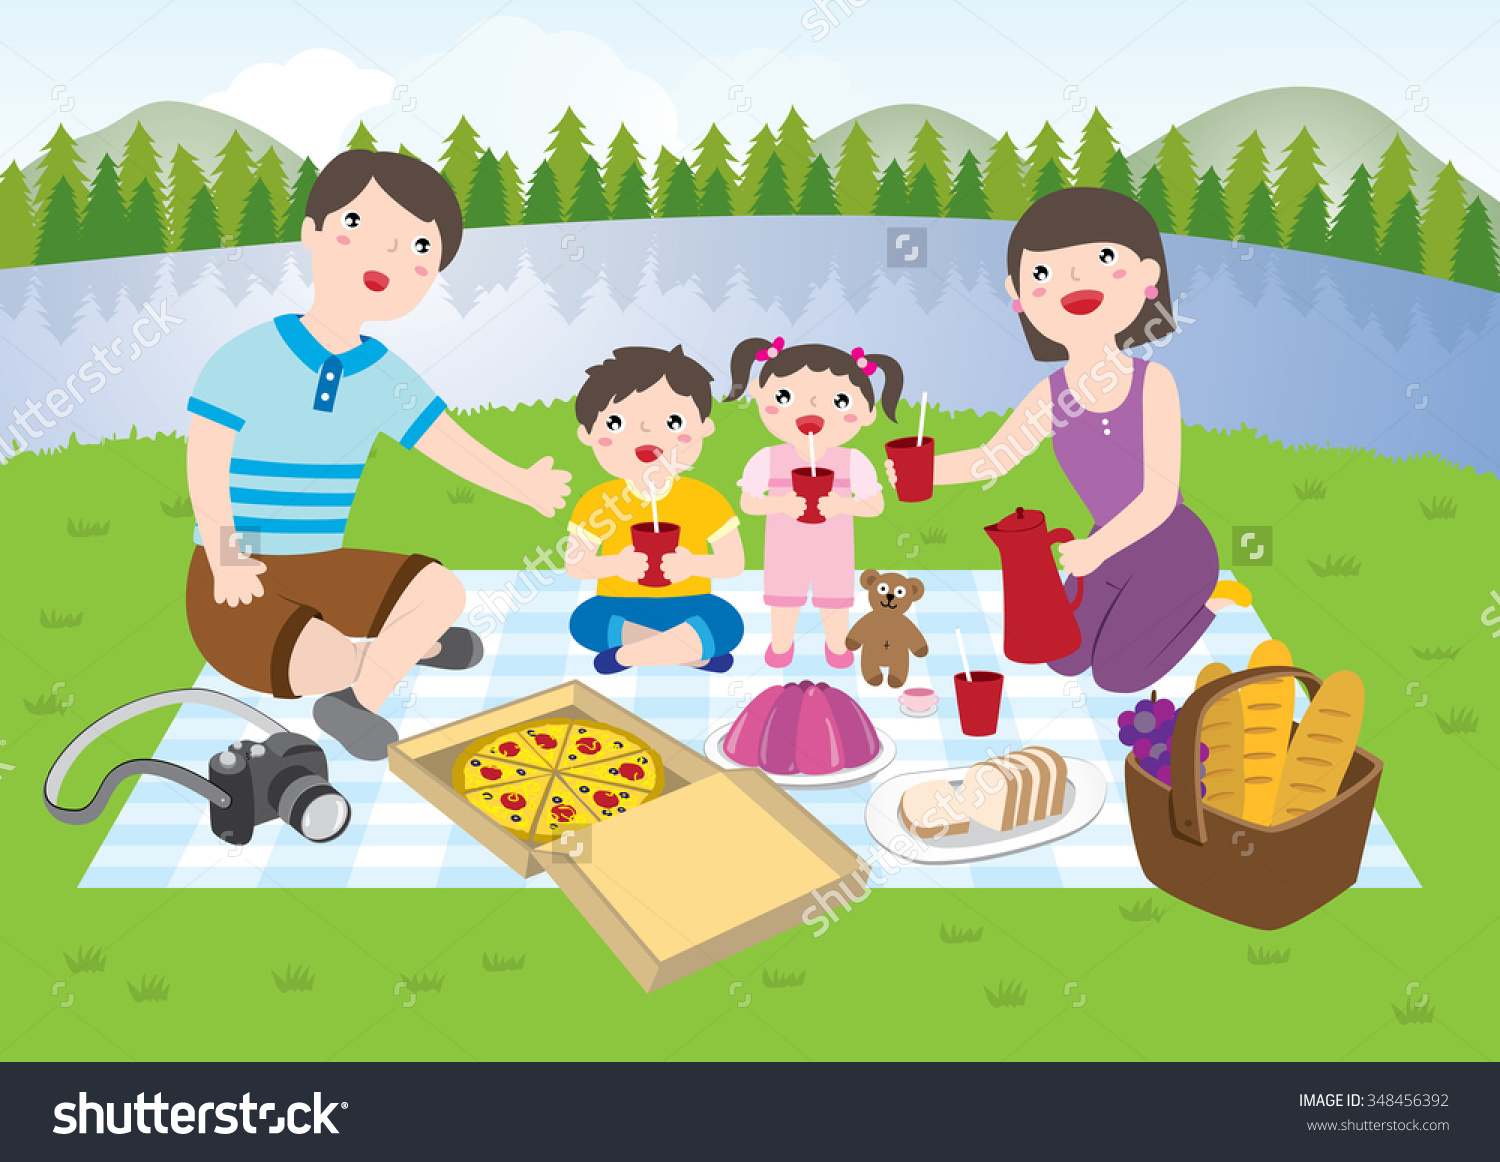 hight resolution of family picnic clipart picnic